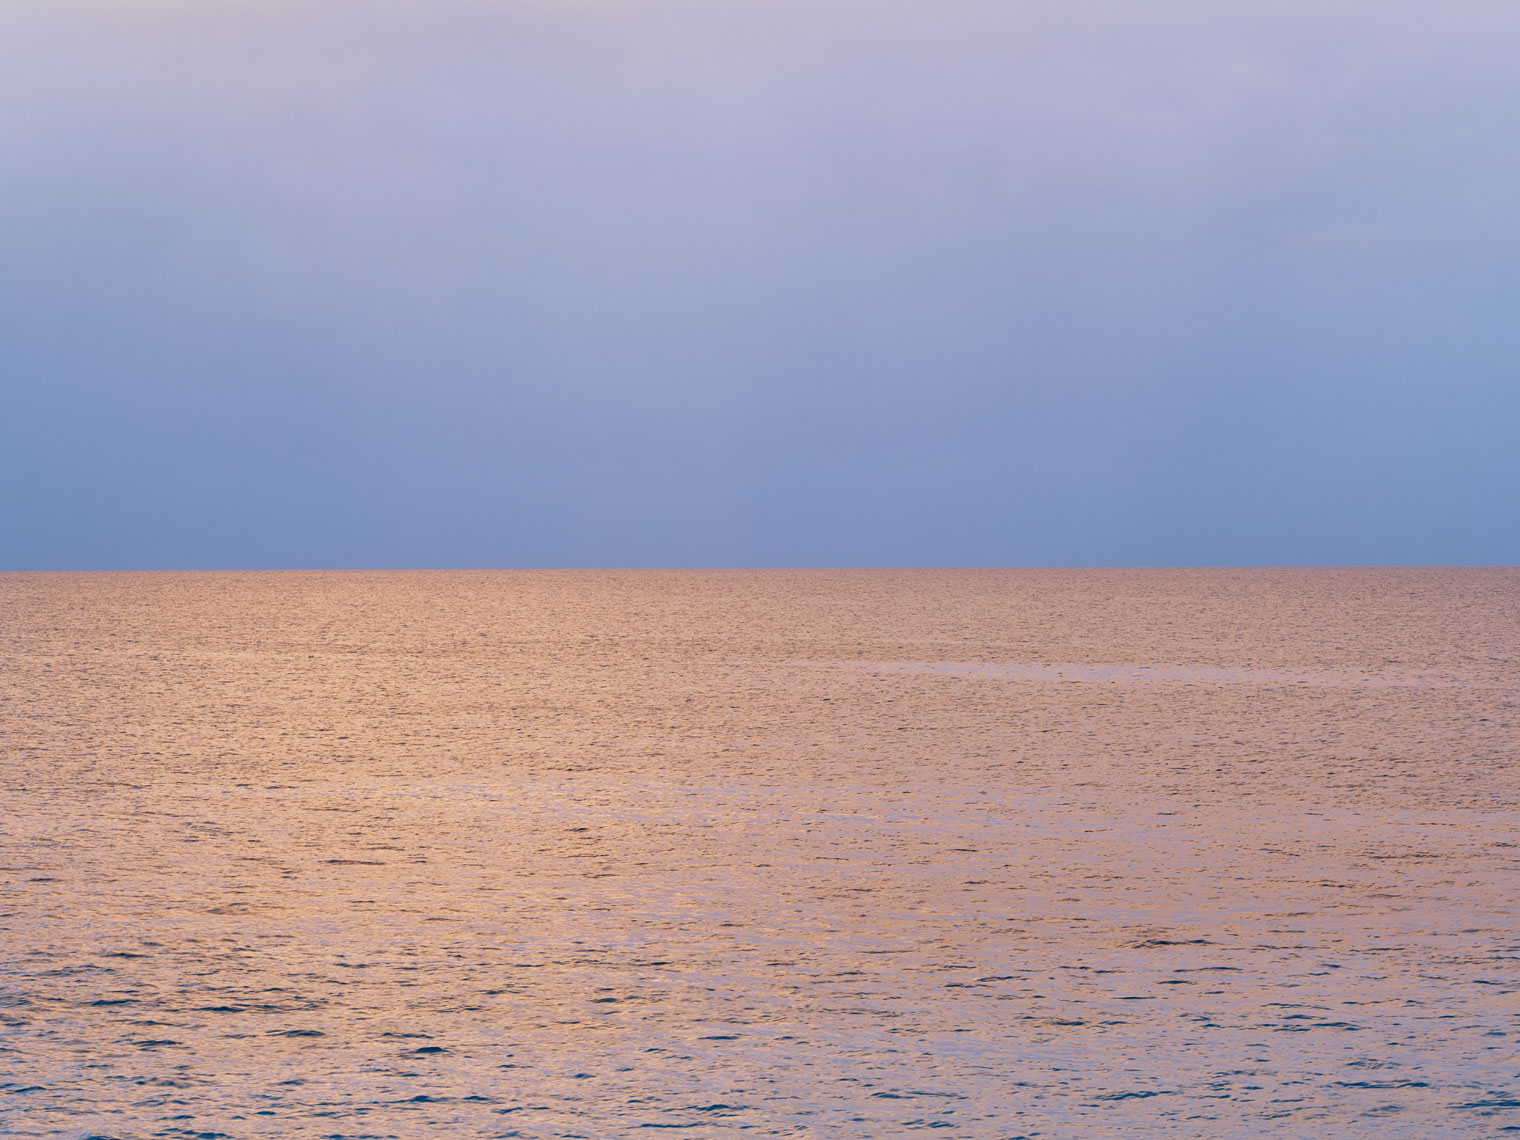 Caribbean Sea • Horizon III